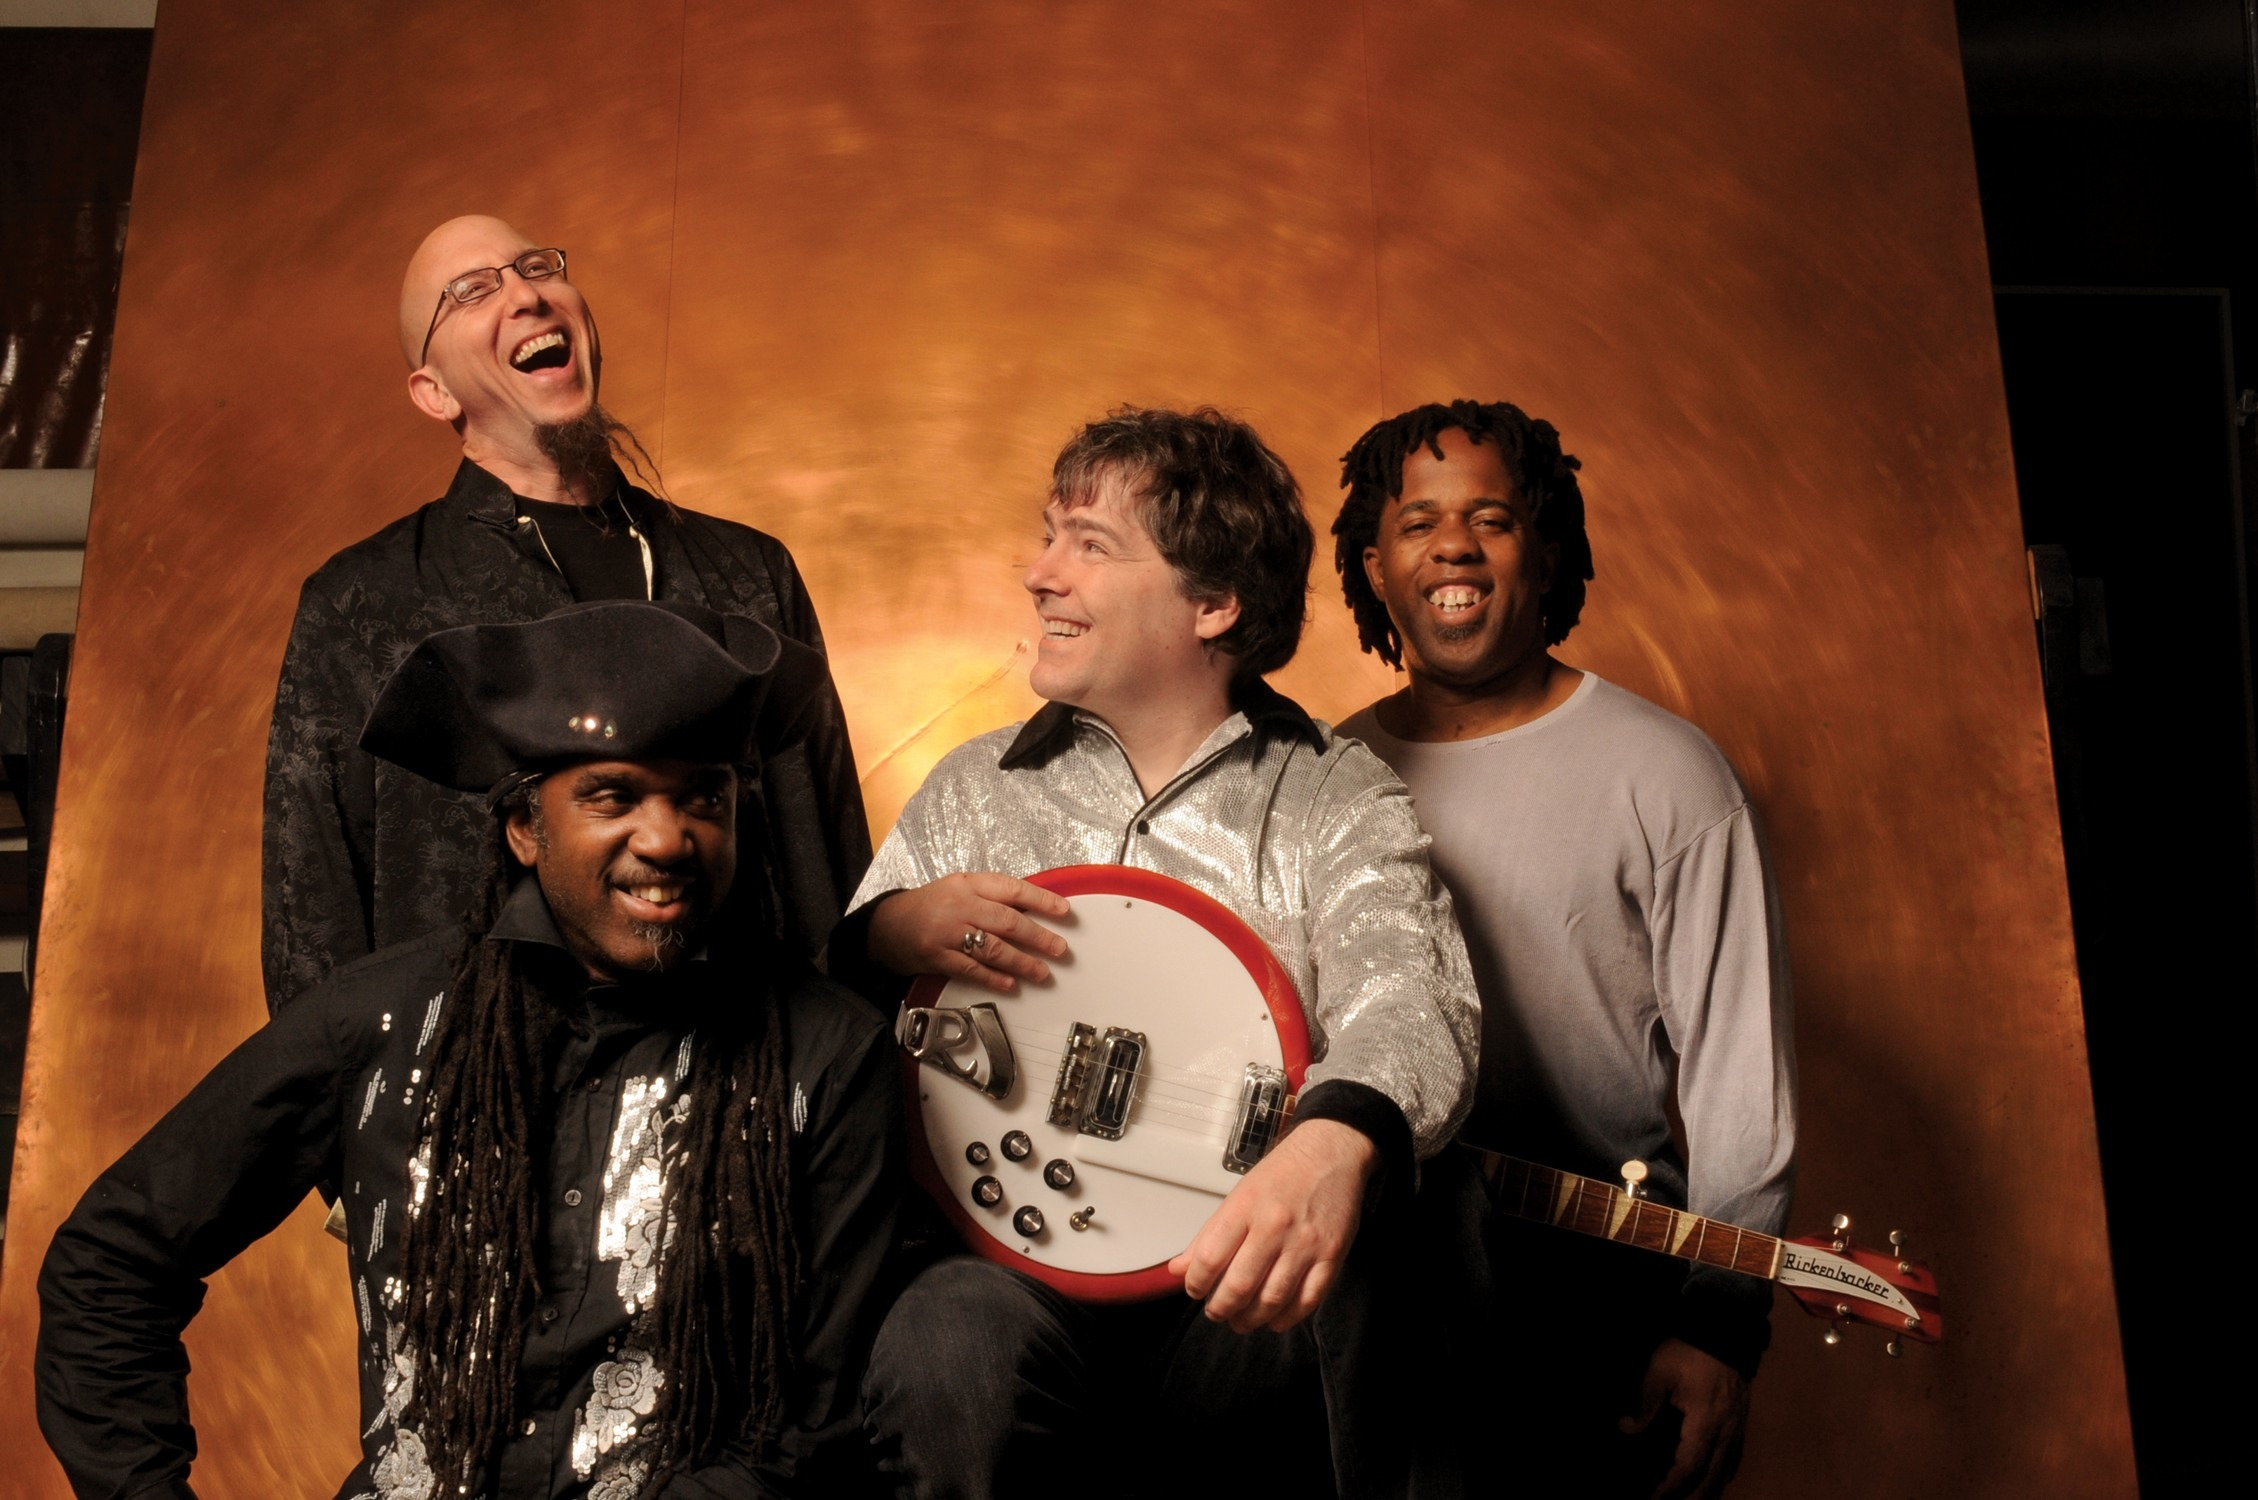 BELA FLECK AND THE FLECKTONES music, discography, MP3, videos and ...